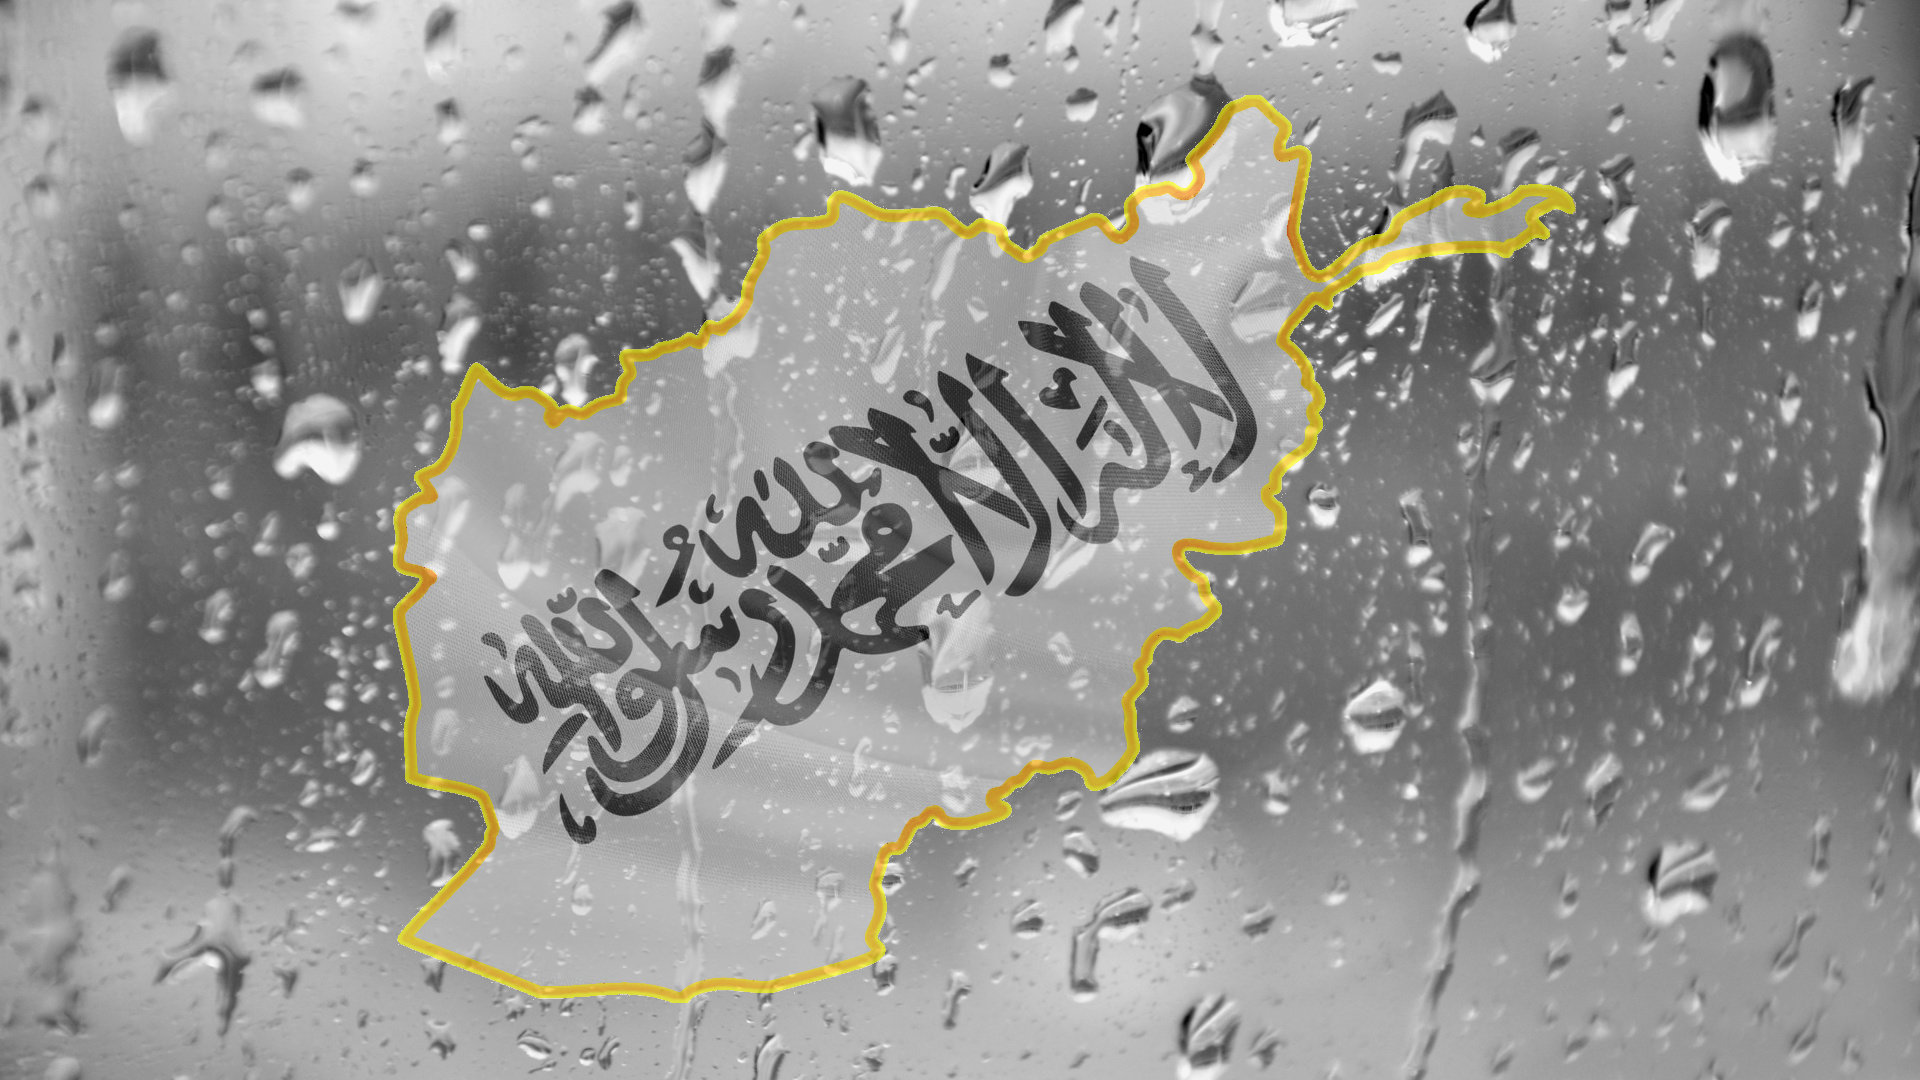 beautiful flag map of Afghanistan Rain wallpaper by GULTALIBk beautiful flag map of Afghanistan Rain wallpaper